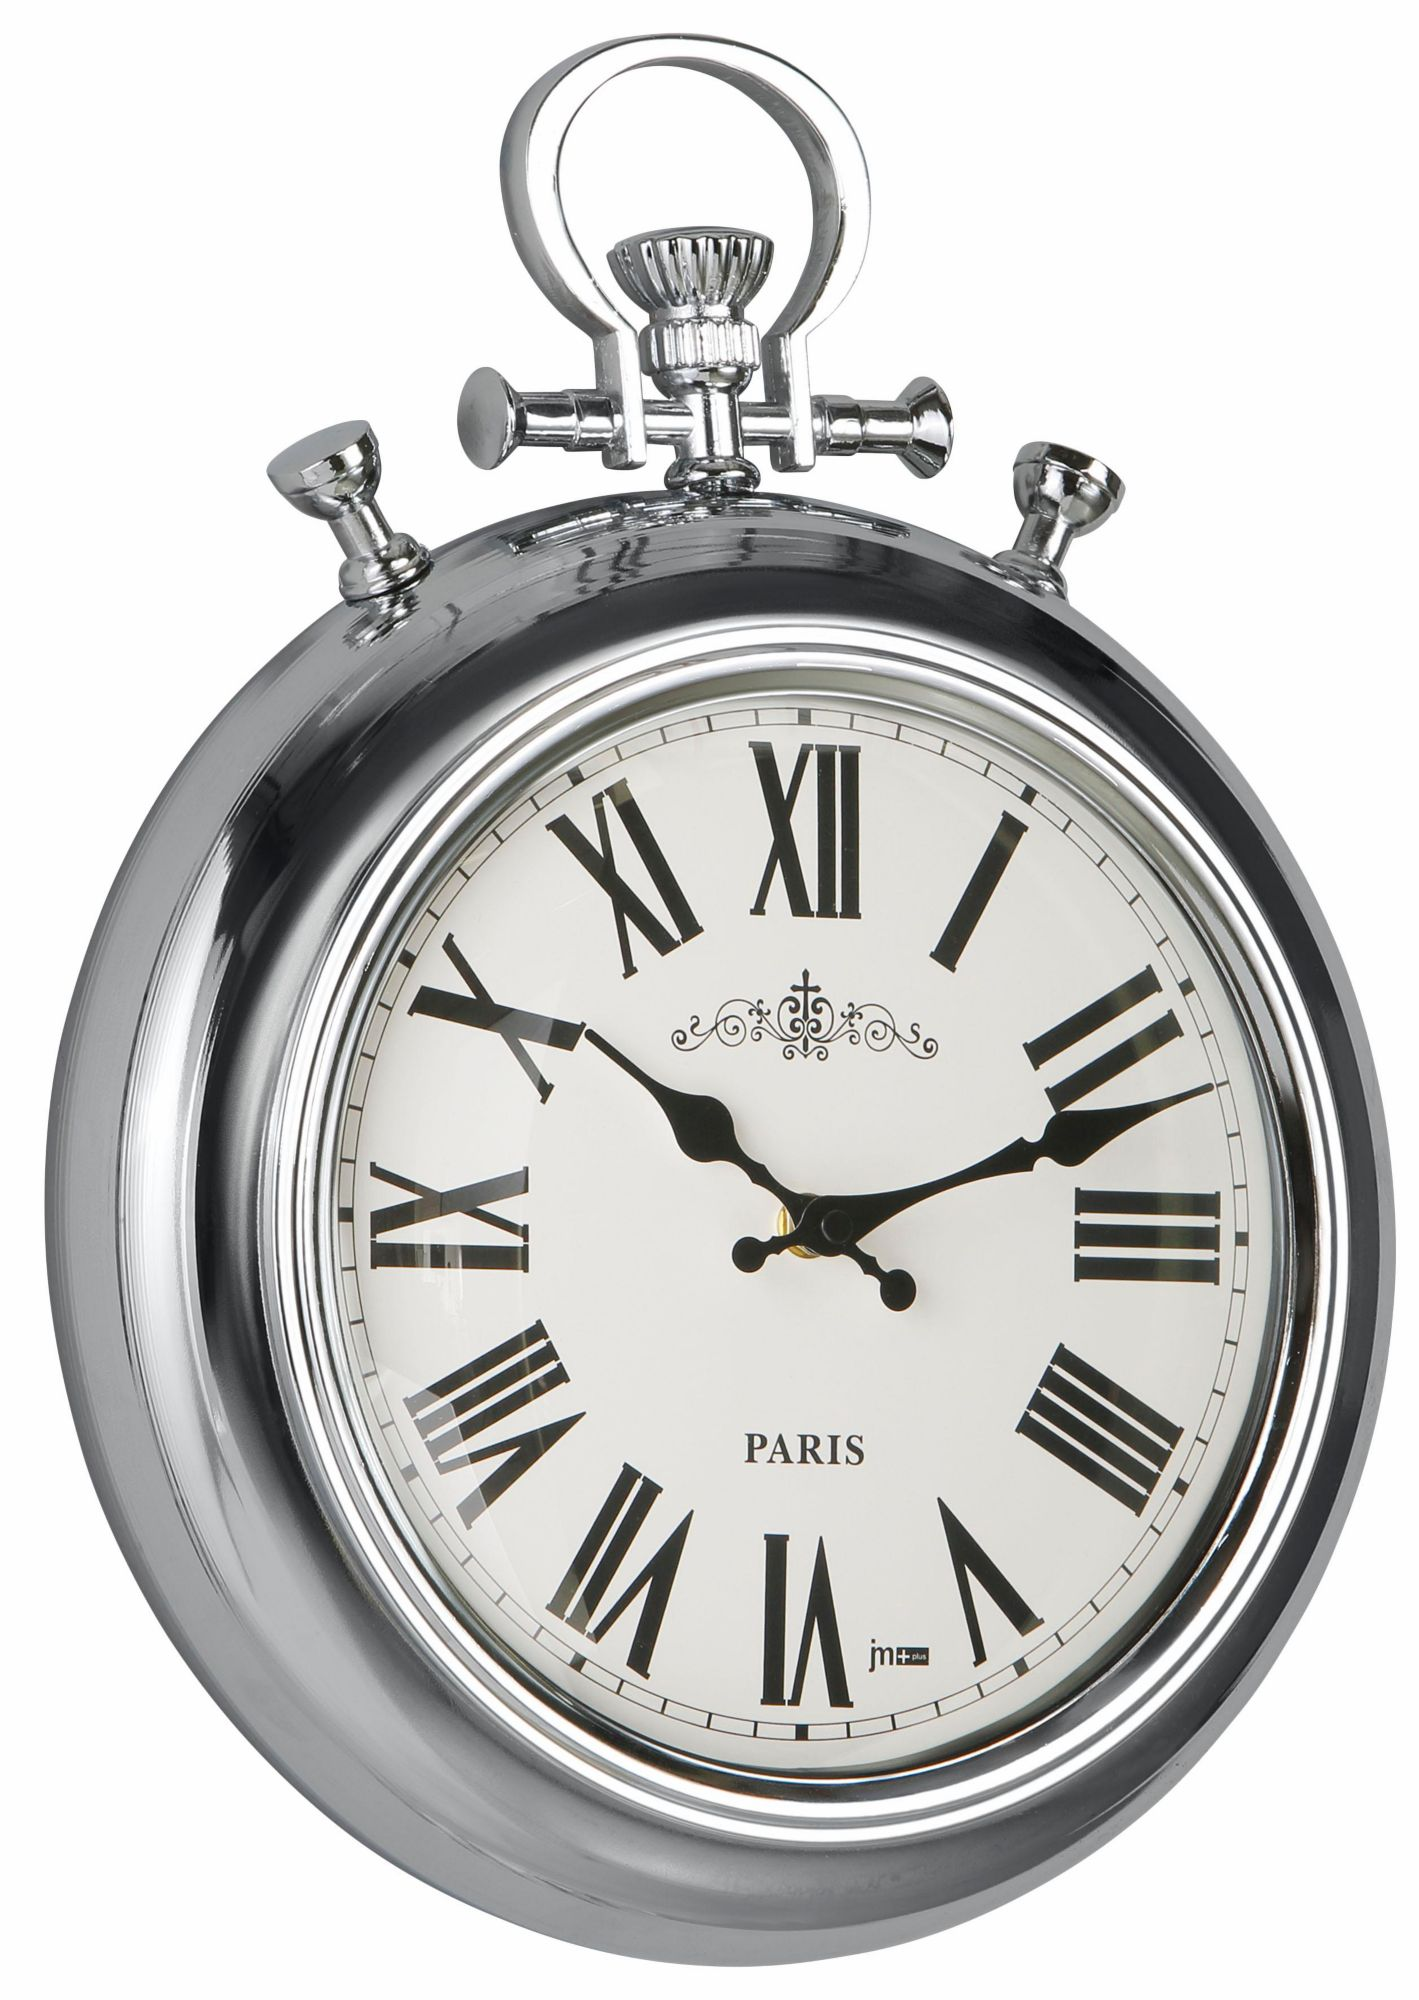 Tfa 60 3010 Quarz Wanduhr 28 5cm X 4 5cm Silber Premium Collection By Home Affaire Wanduhr